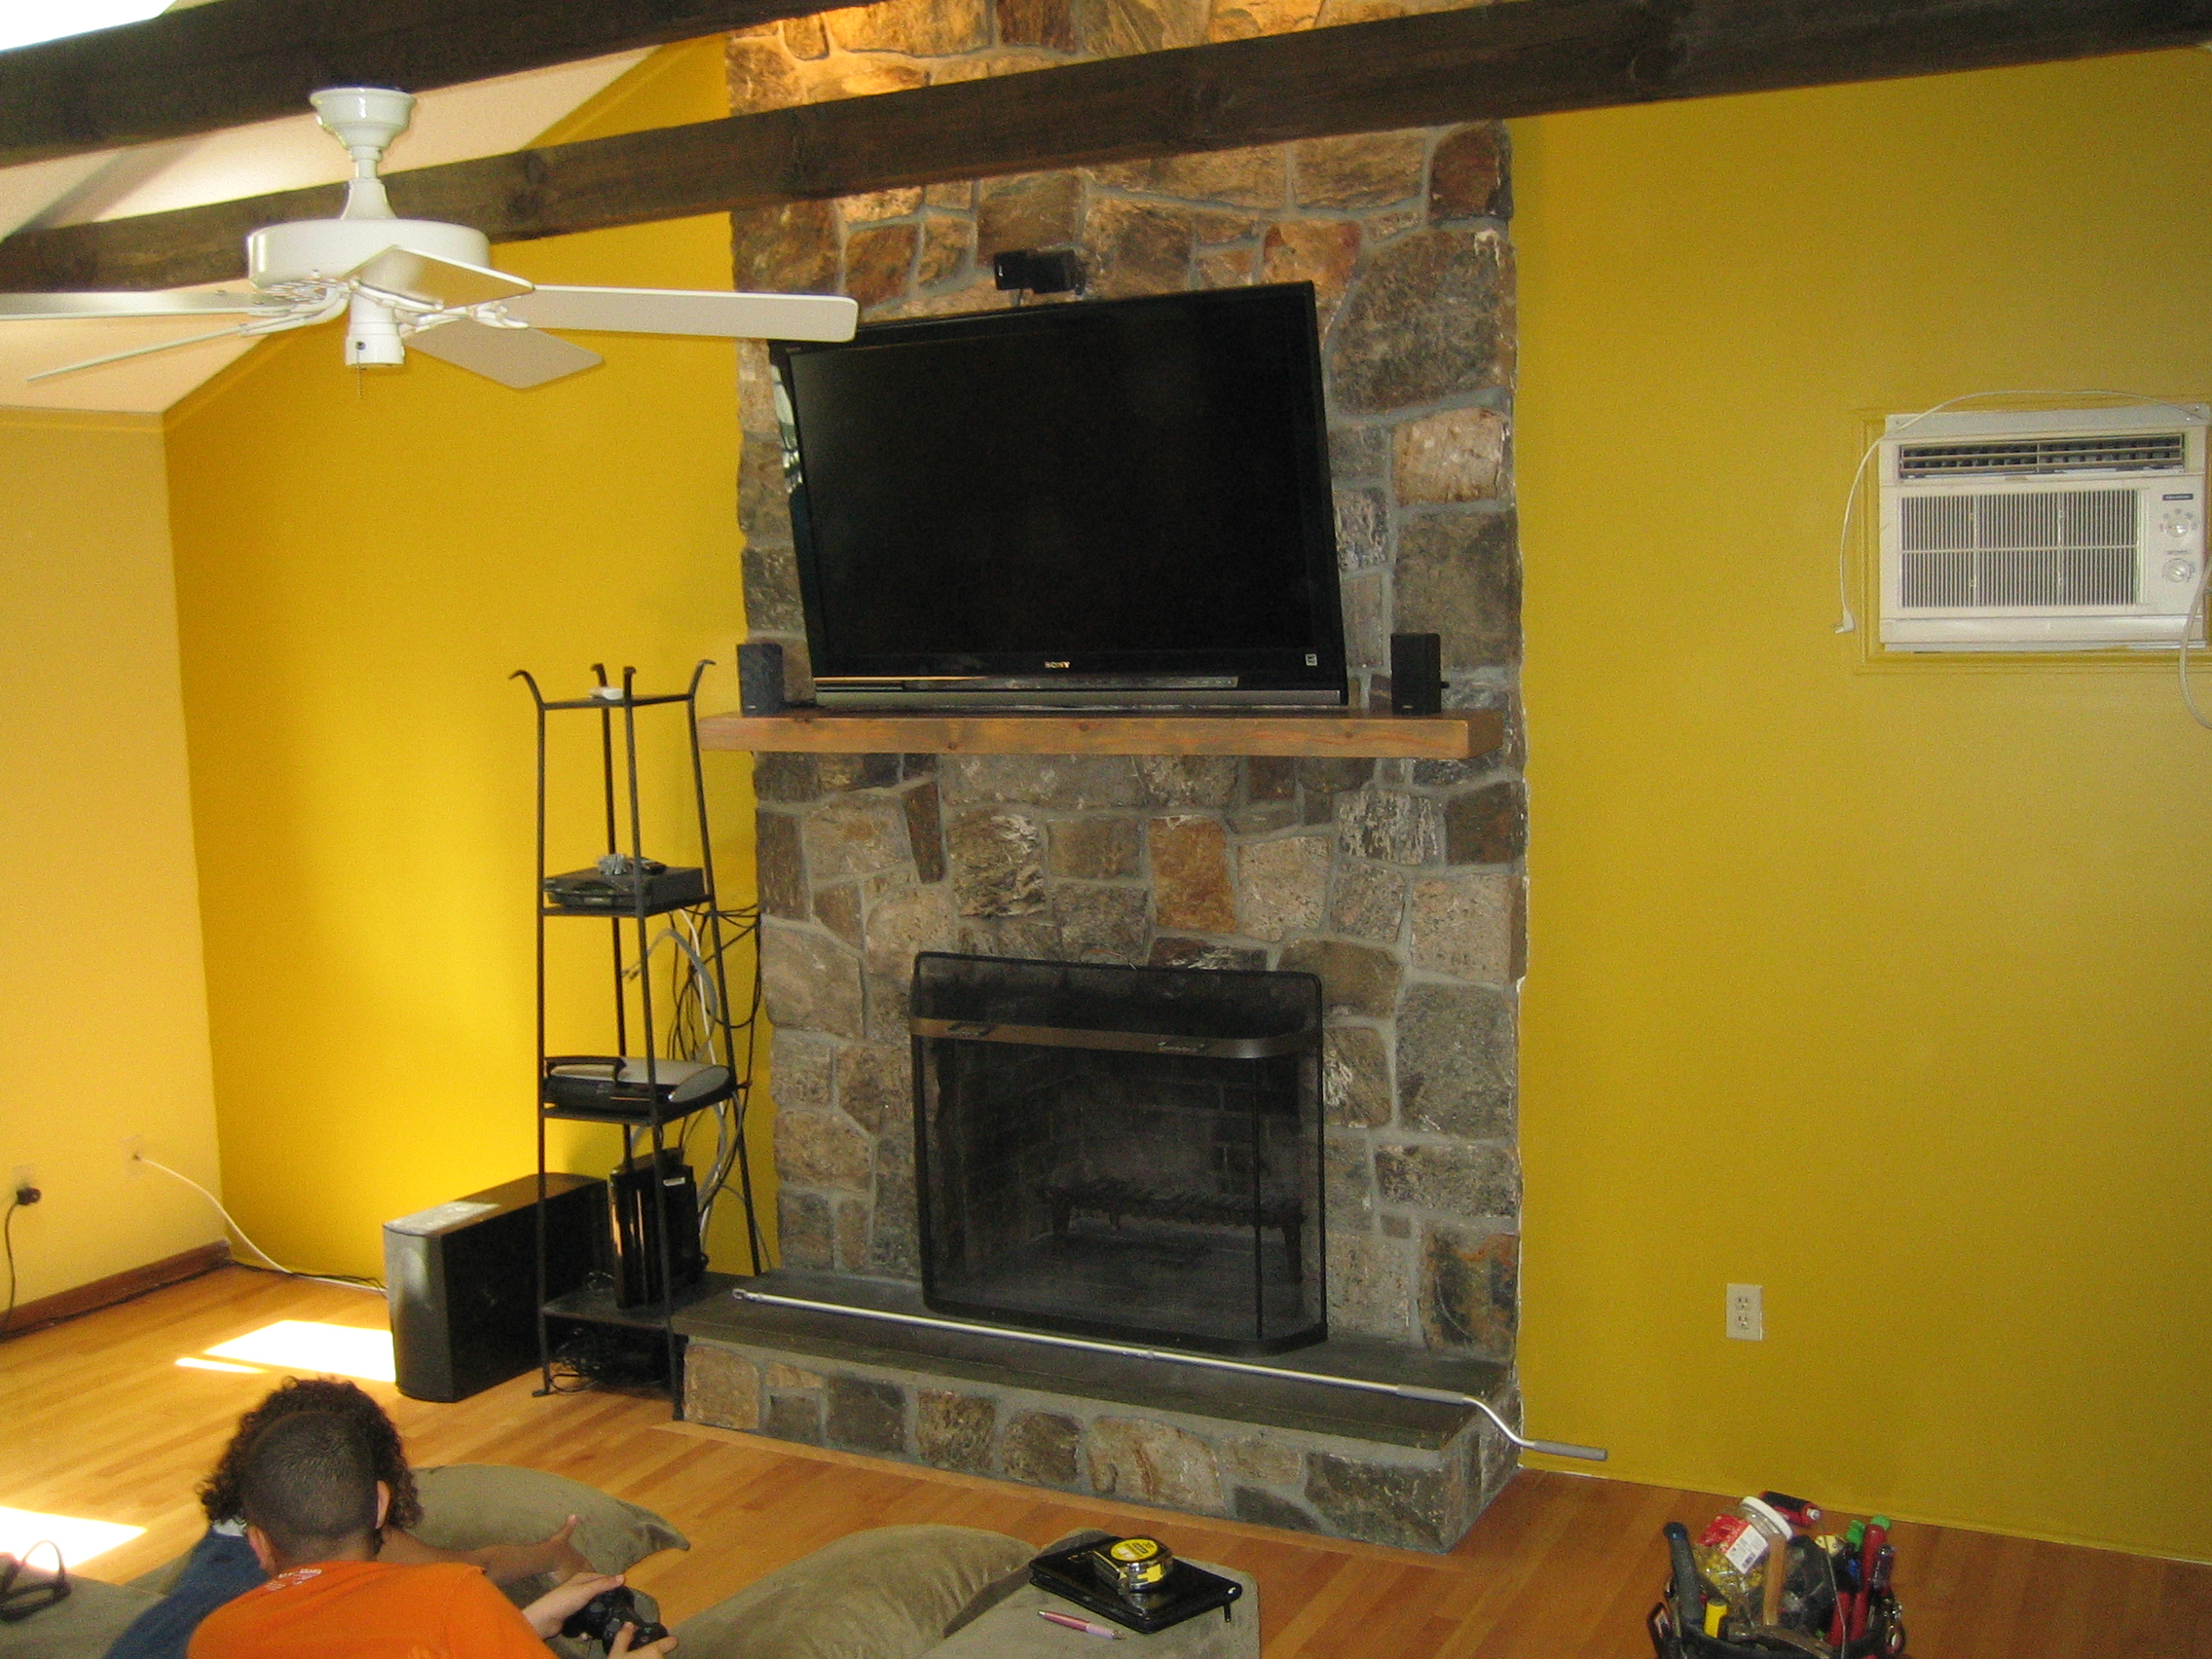 How Do You Mount A Tv Over Stone Fireplace - Fireplace Ideas